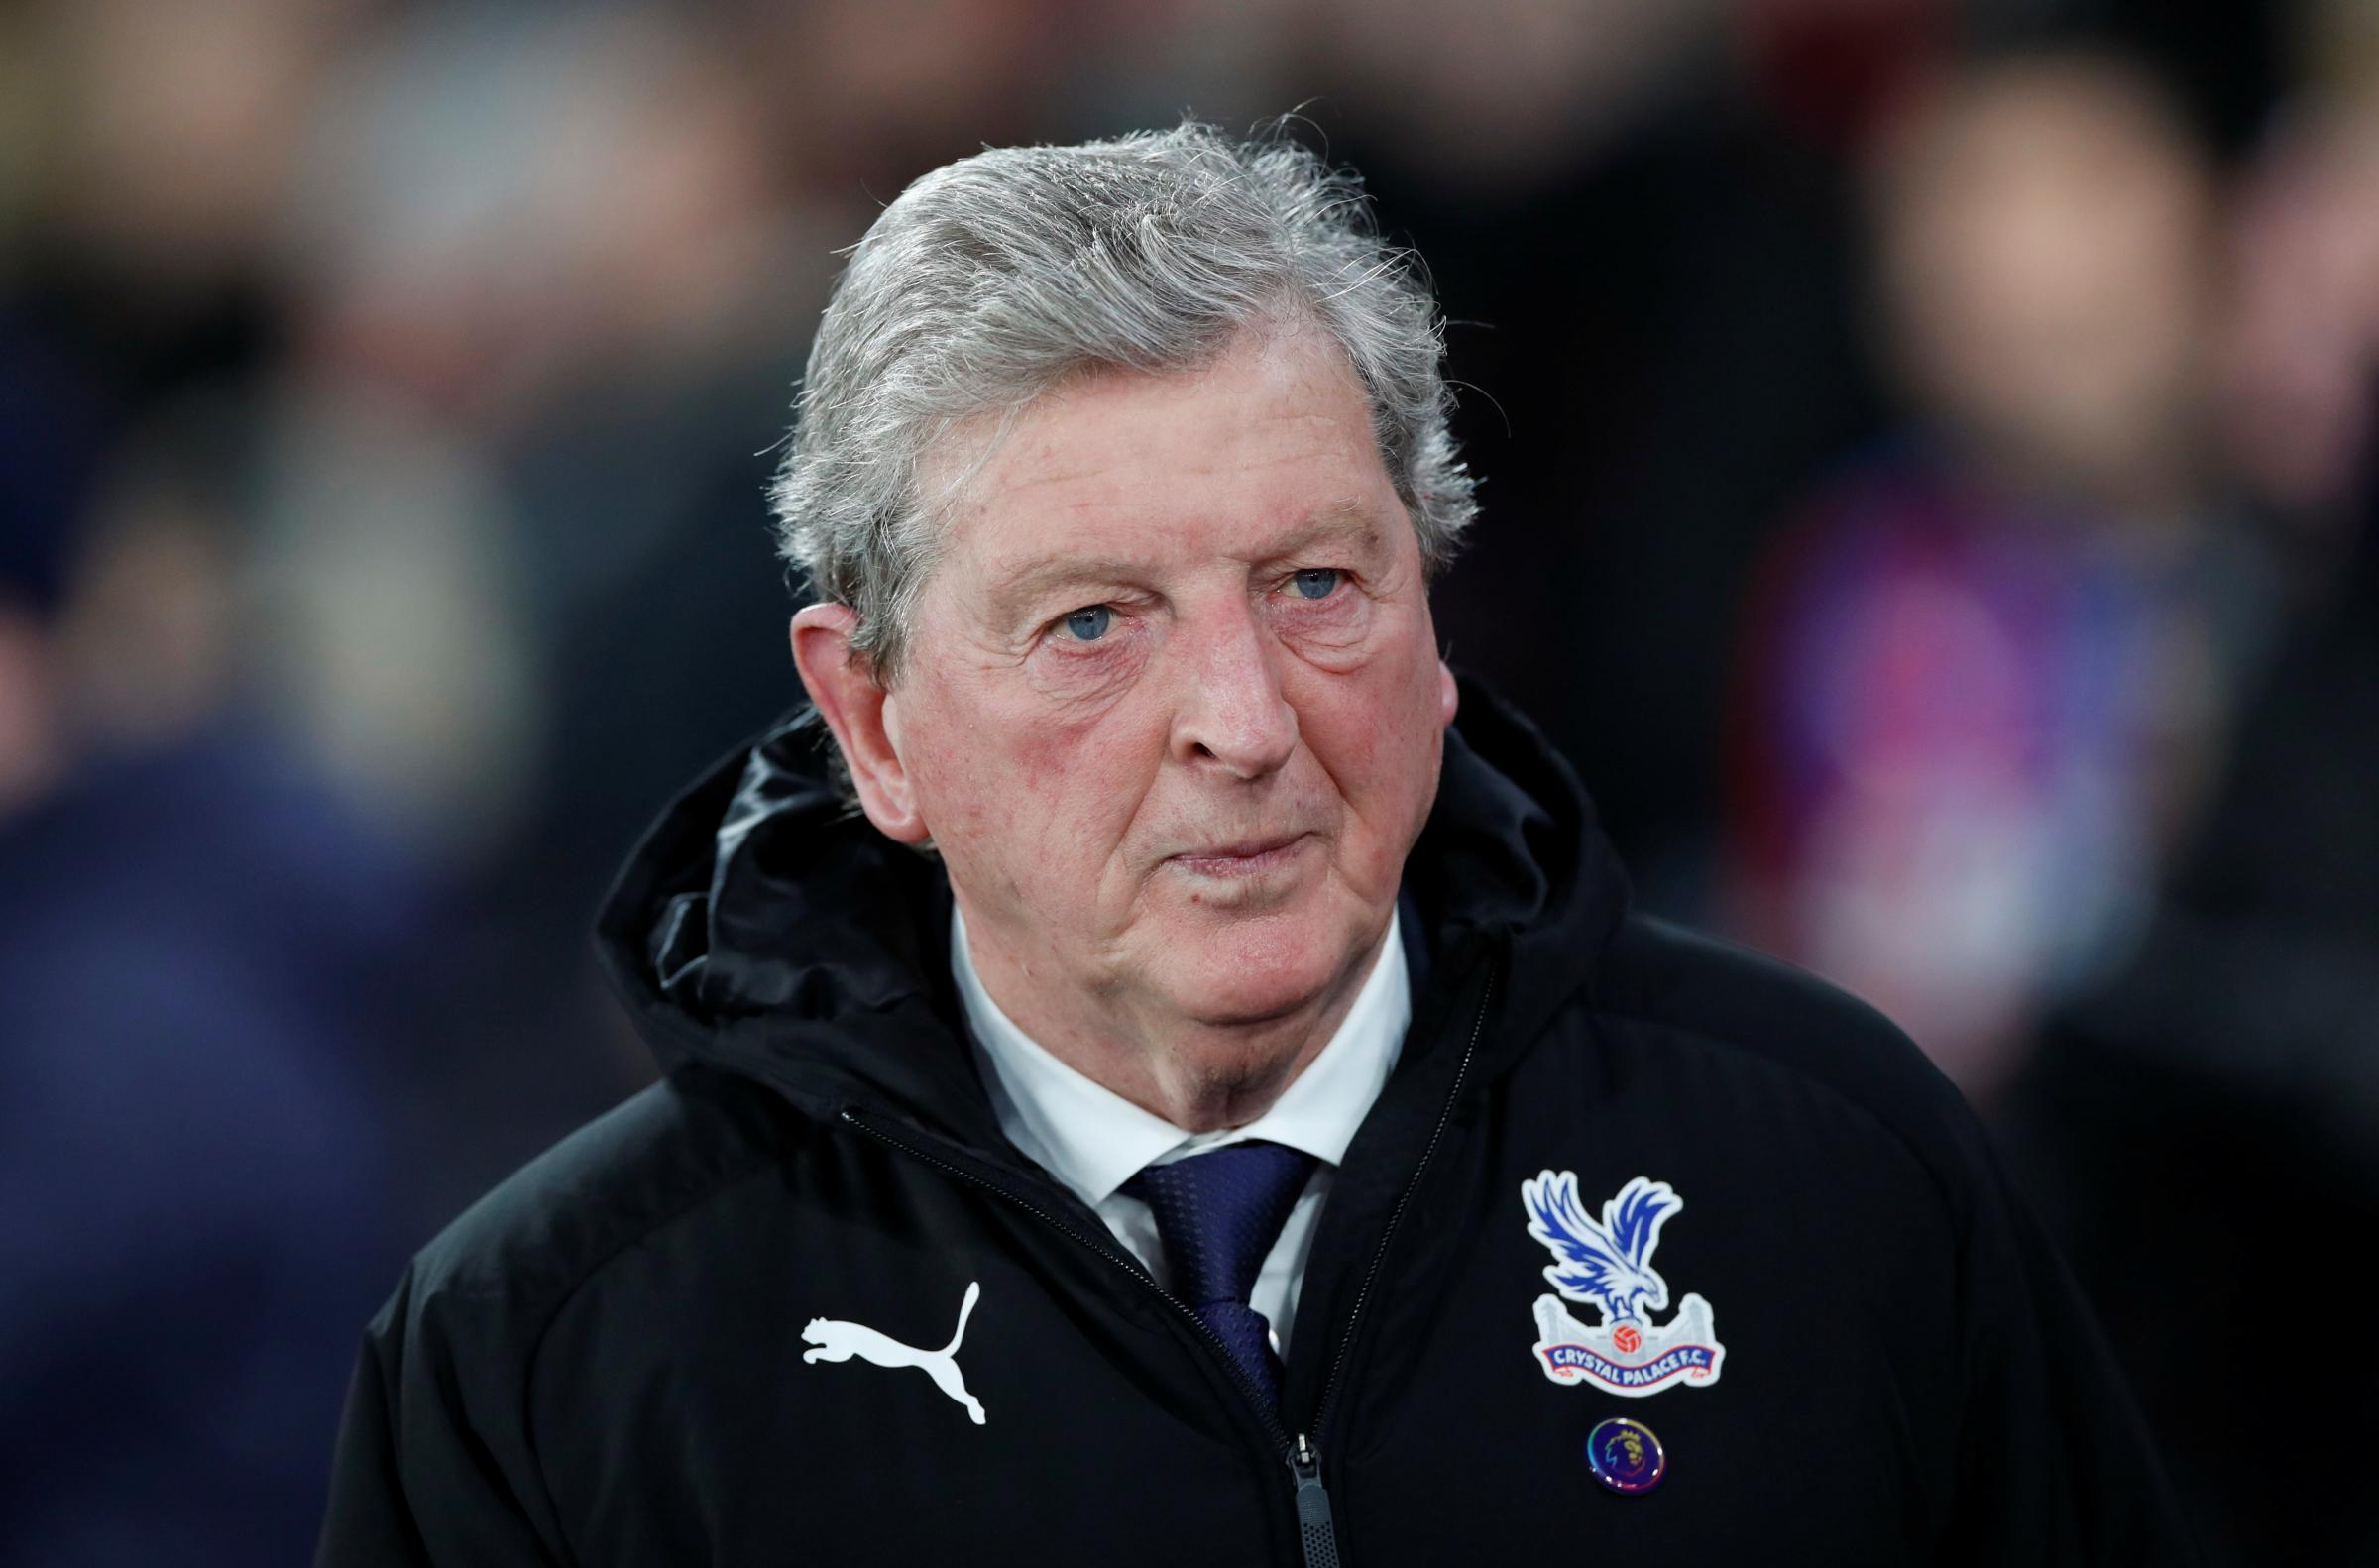 Crystal Palace boss Roy Hodgson optimistic about Watford's prospects under Nigel Pearson